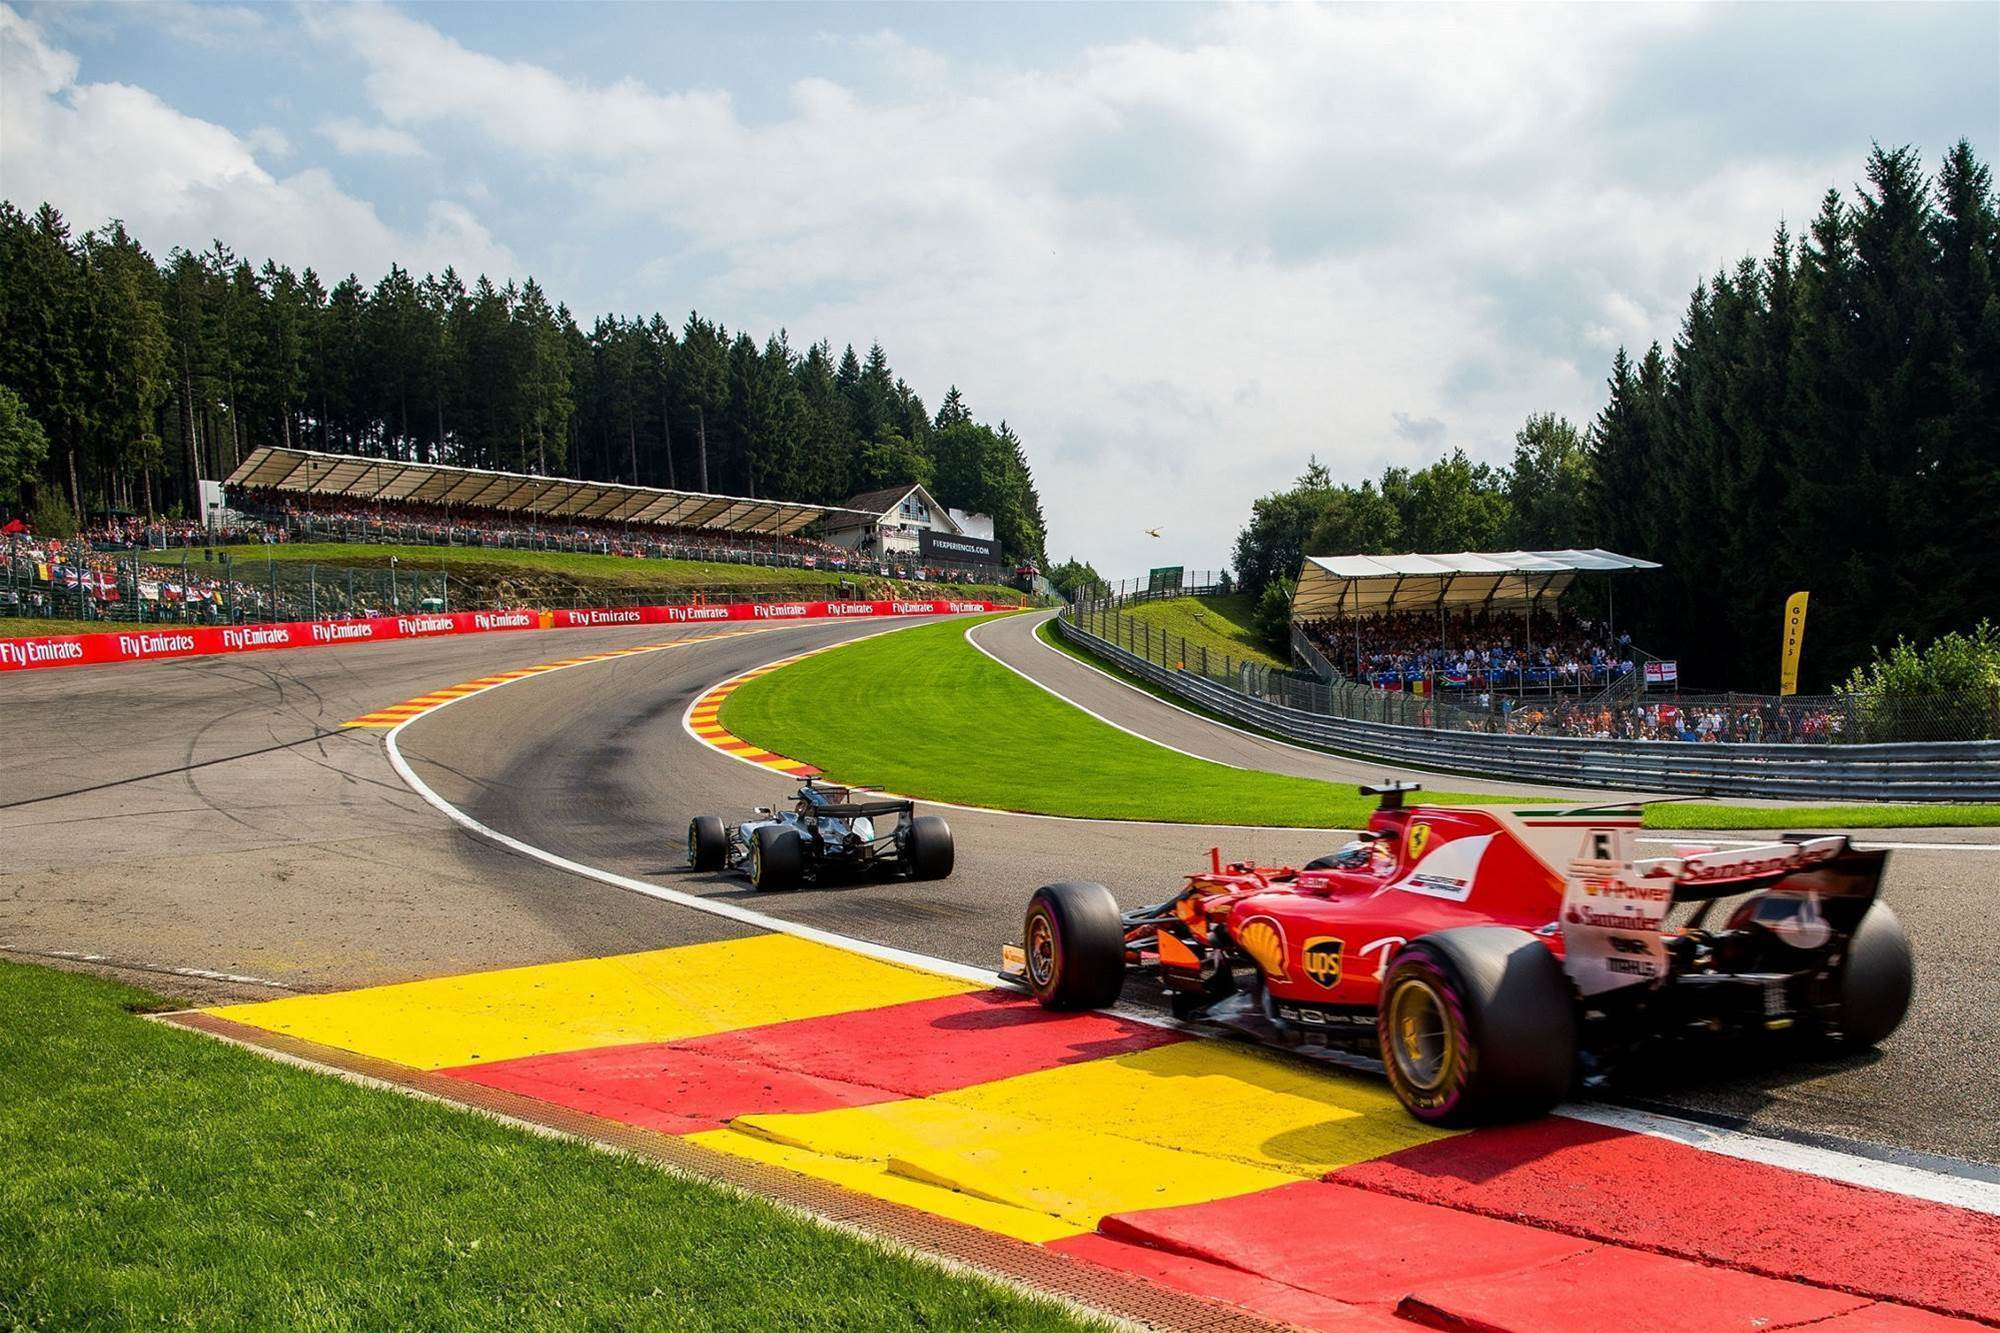 Pic Gallery: Spa-Francorchamps F1